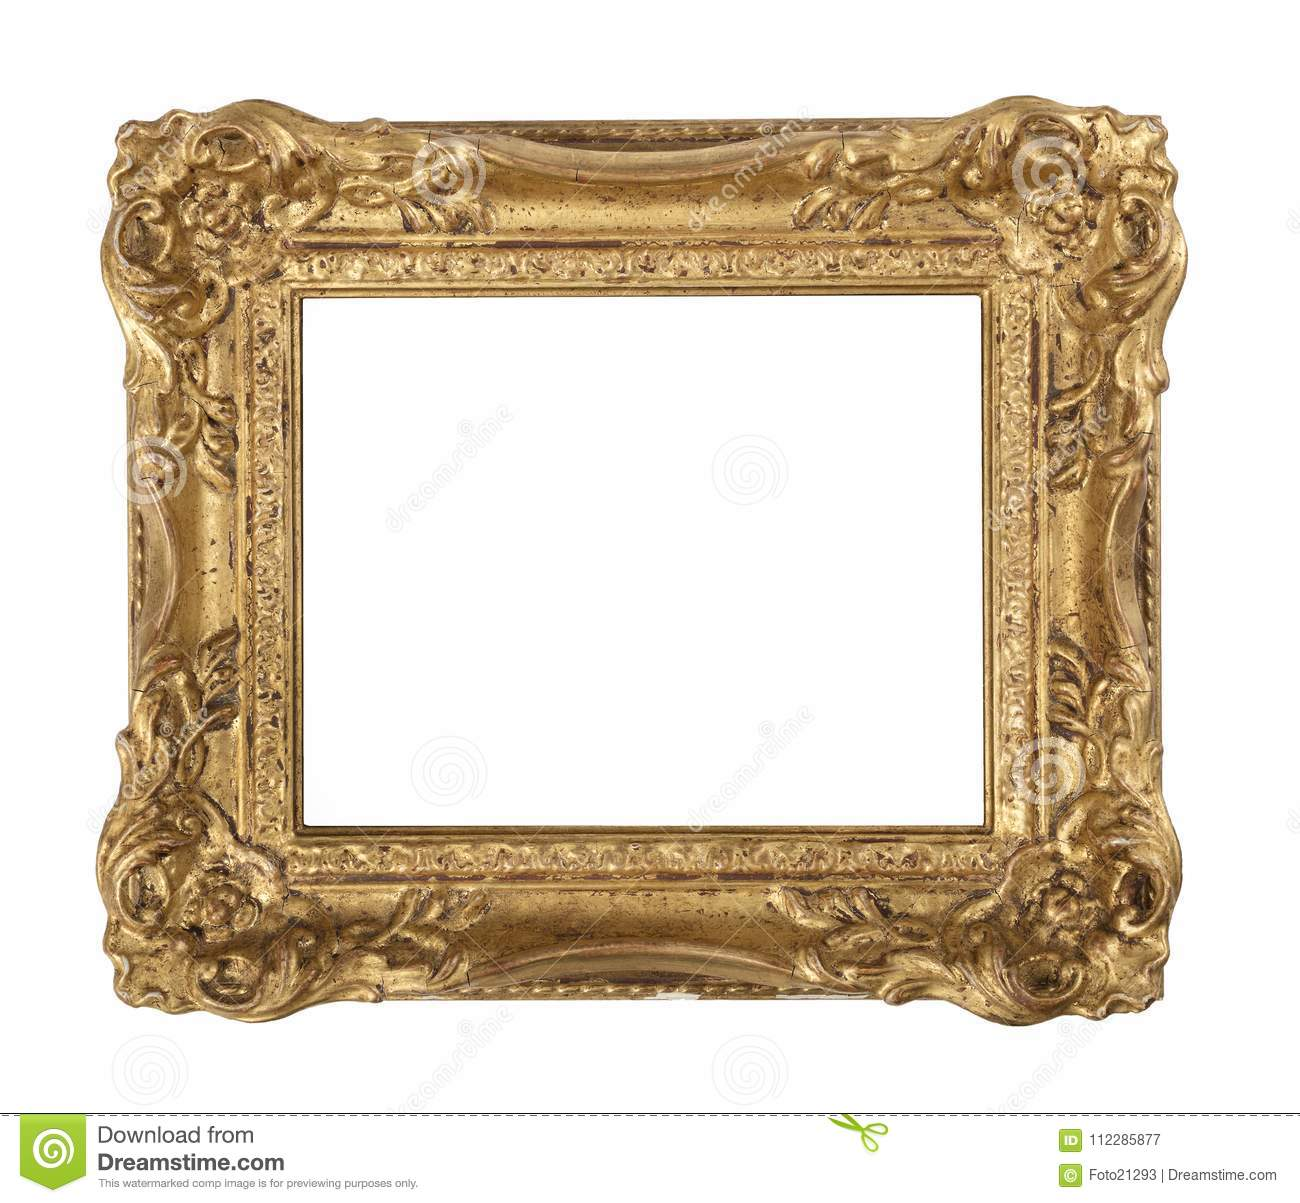 Ornate old gilded frame stock image. Image of traditional - 112285877